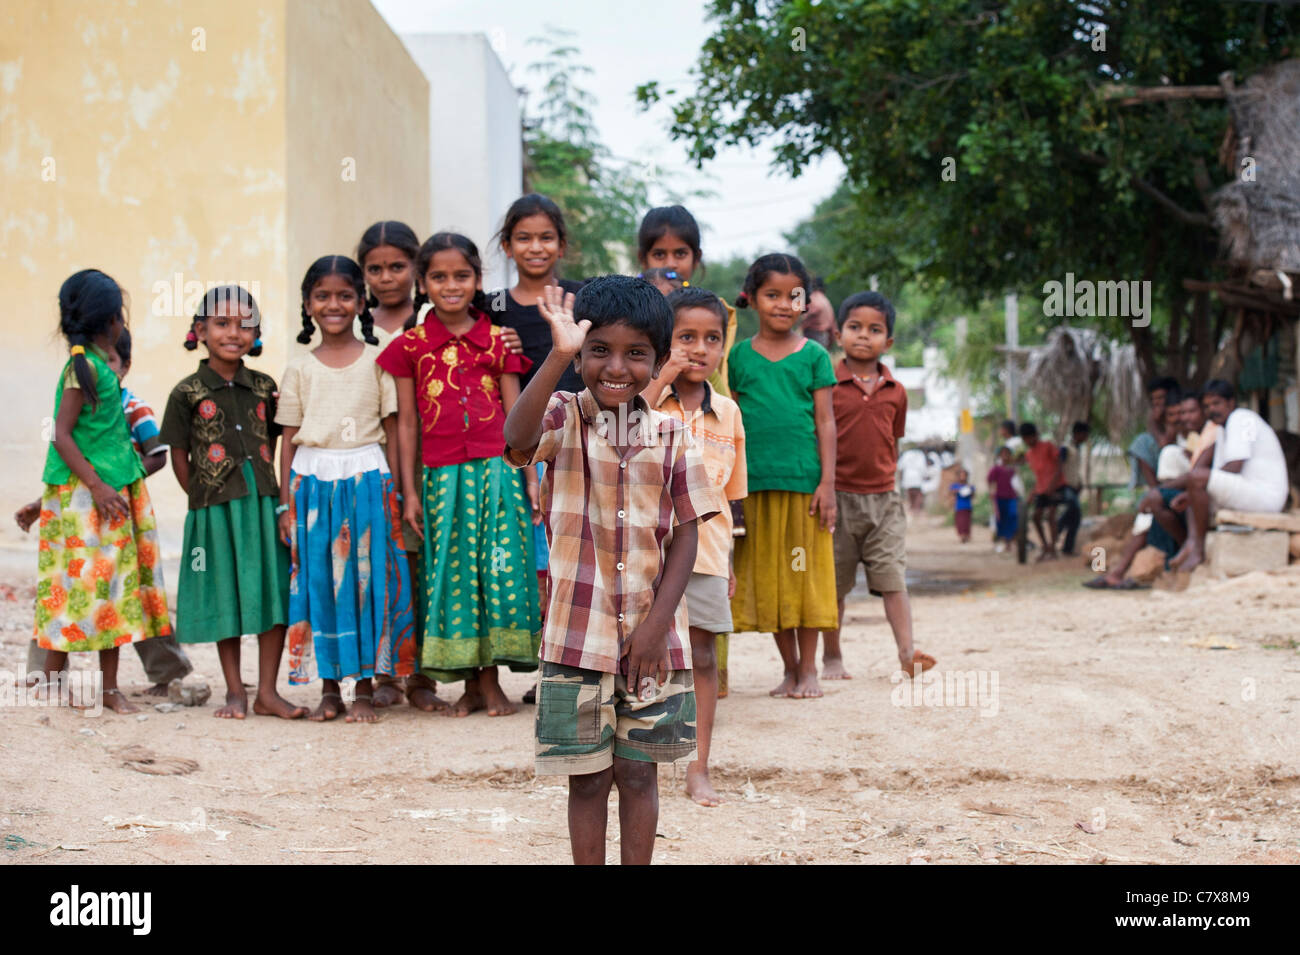 Happy young rural Indian village boy laughing waving in front of a group of  village children. Andhra Pradesh, India. - Stock Image